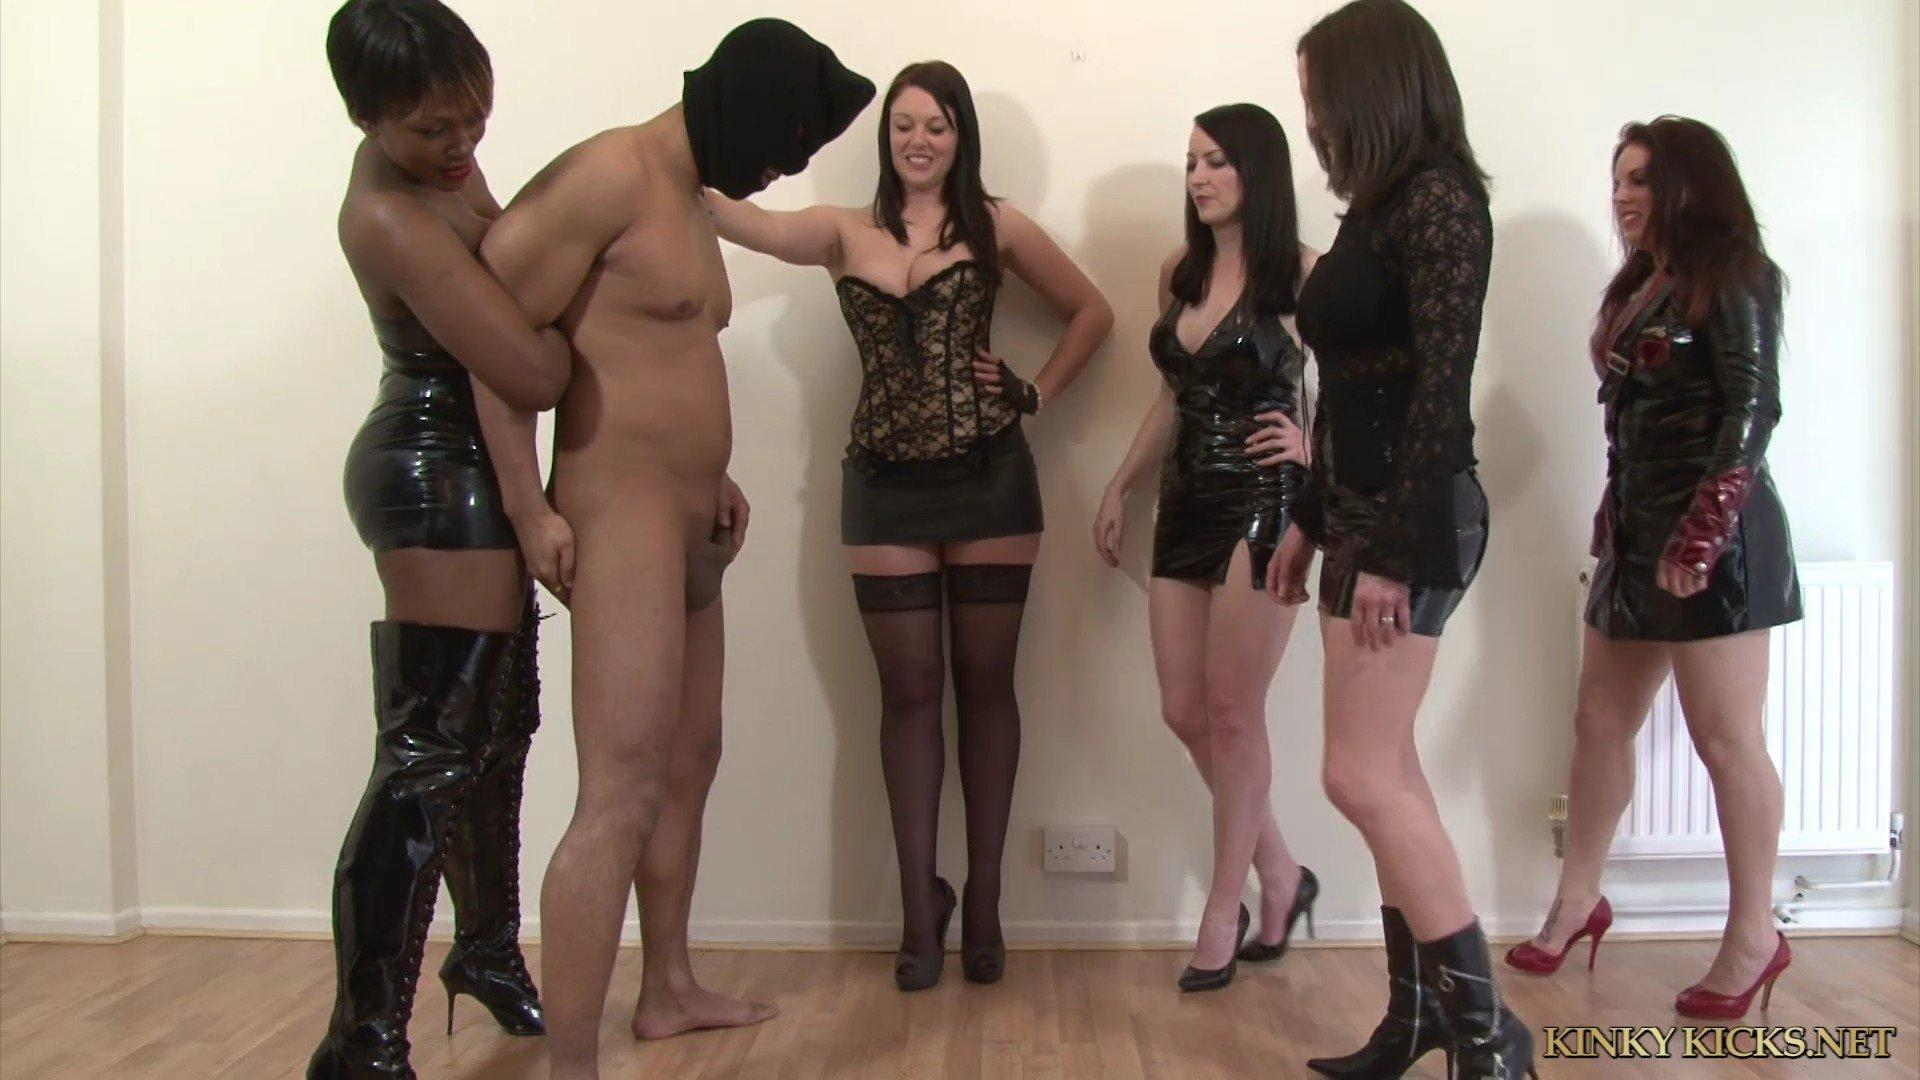 Ball Busting Porn Stories femdom fun ball busting - porn galleries